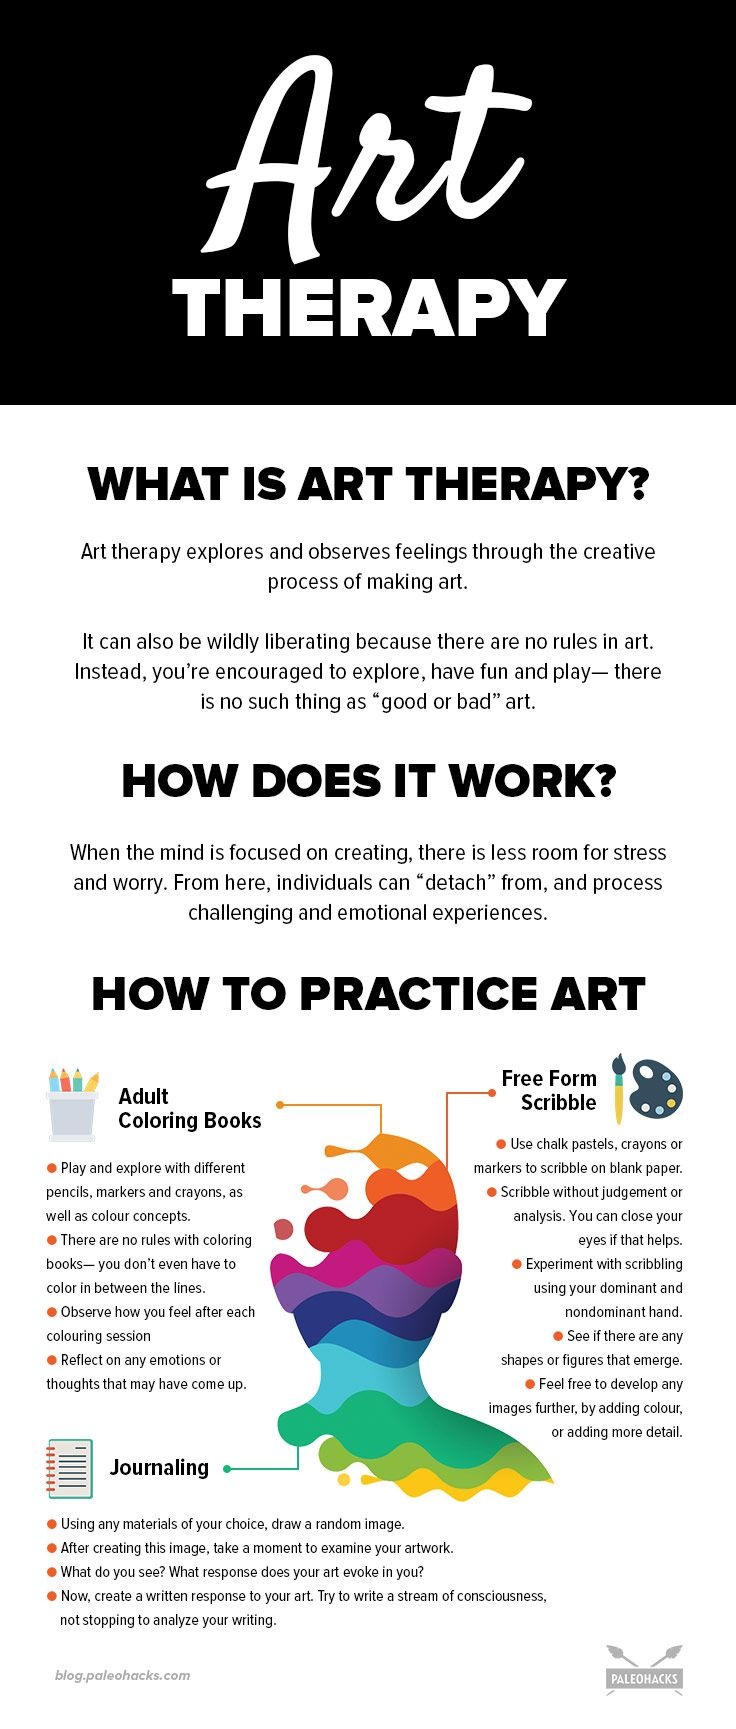 While it may not seem like scribbling with crayons could be therapeutic, there's a lot of unconscious processing that goes on in your mind during any form of artistic expression—much more than you may think. Read the article here: http://paleo.co/arttherapy101